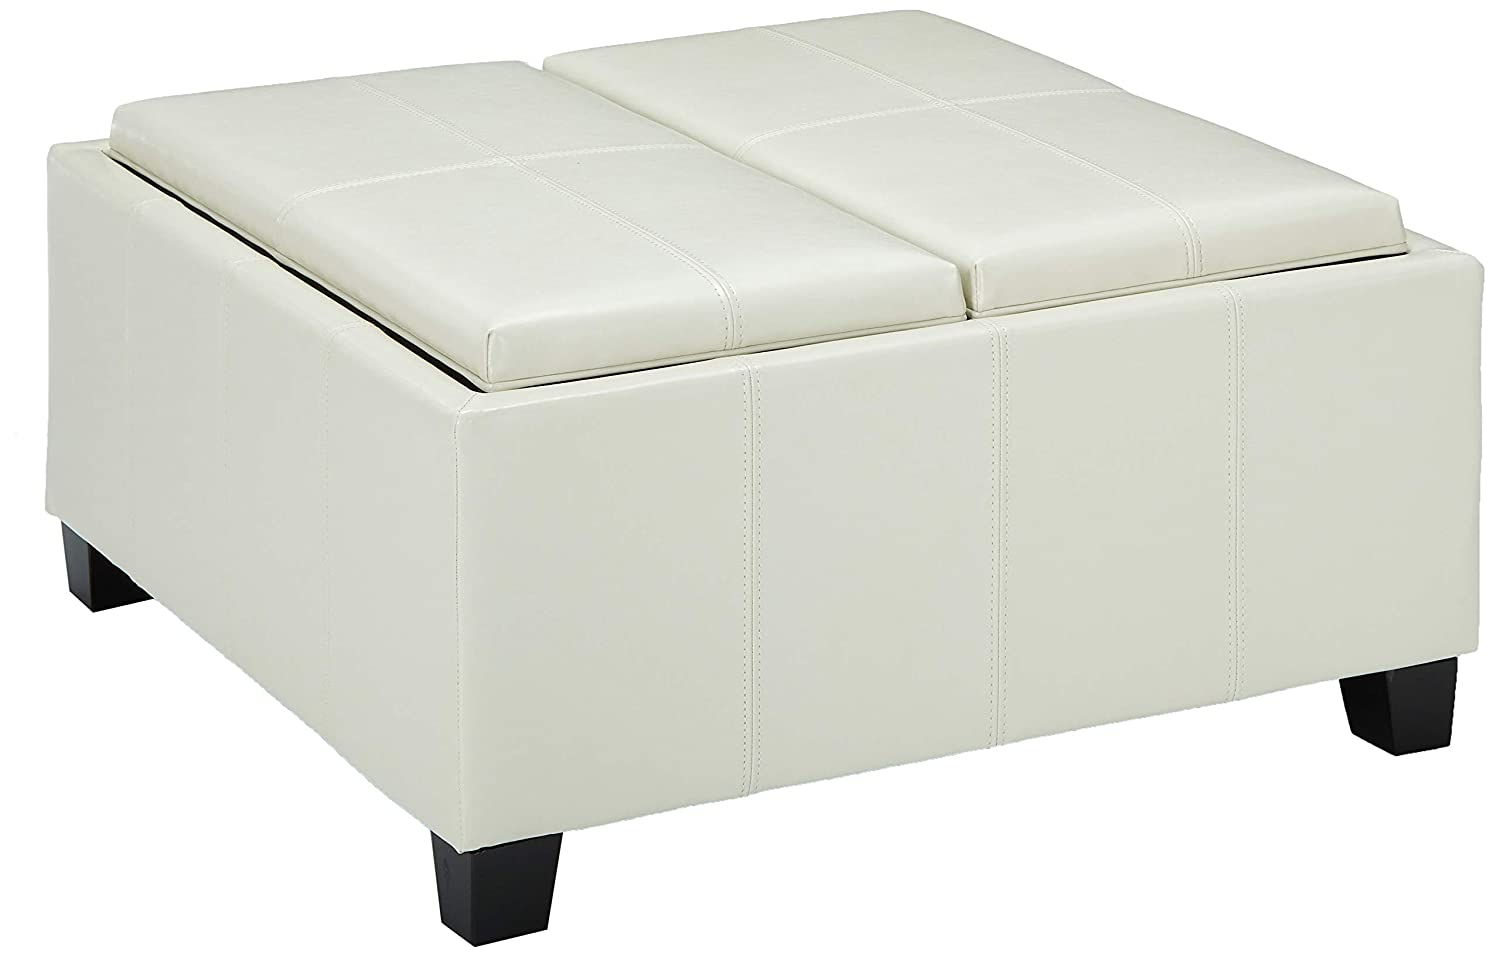 Brilliant Christopher Knight Home Living Justin Off White Leather Tray Top Storage Ottoman Ivory Gmtry Best Dining Table And Chair Ideas Images Gmtryco